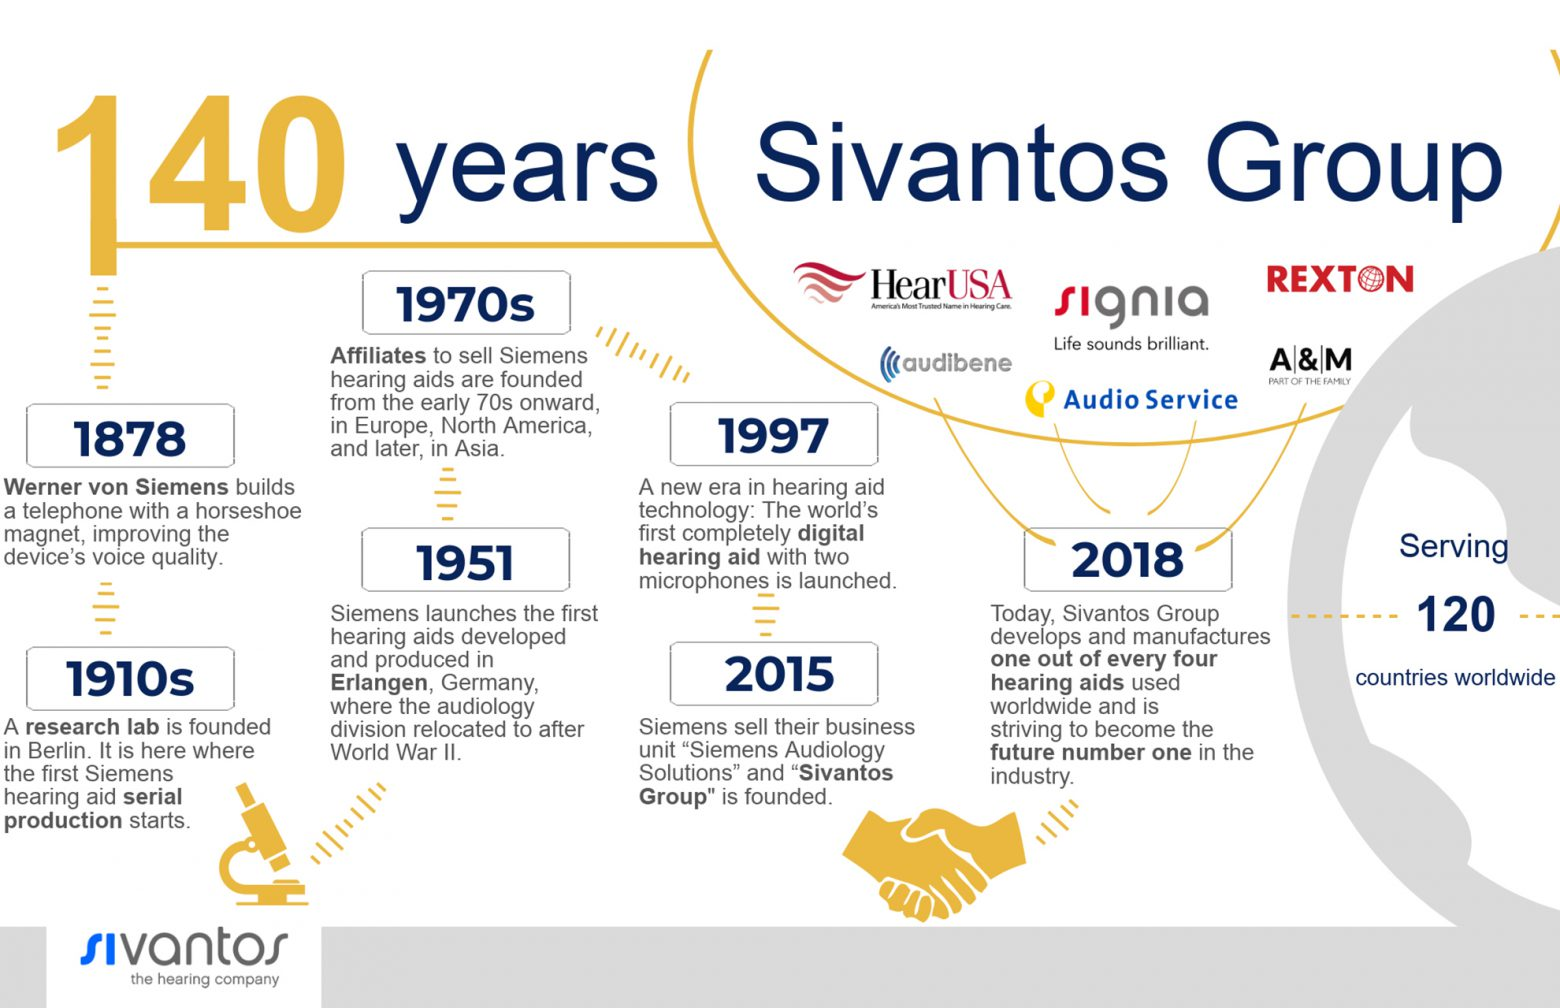 infographic about the history of Sivantos